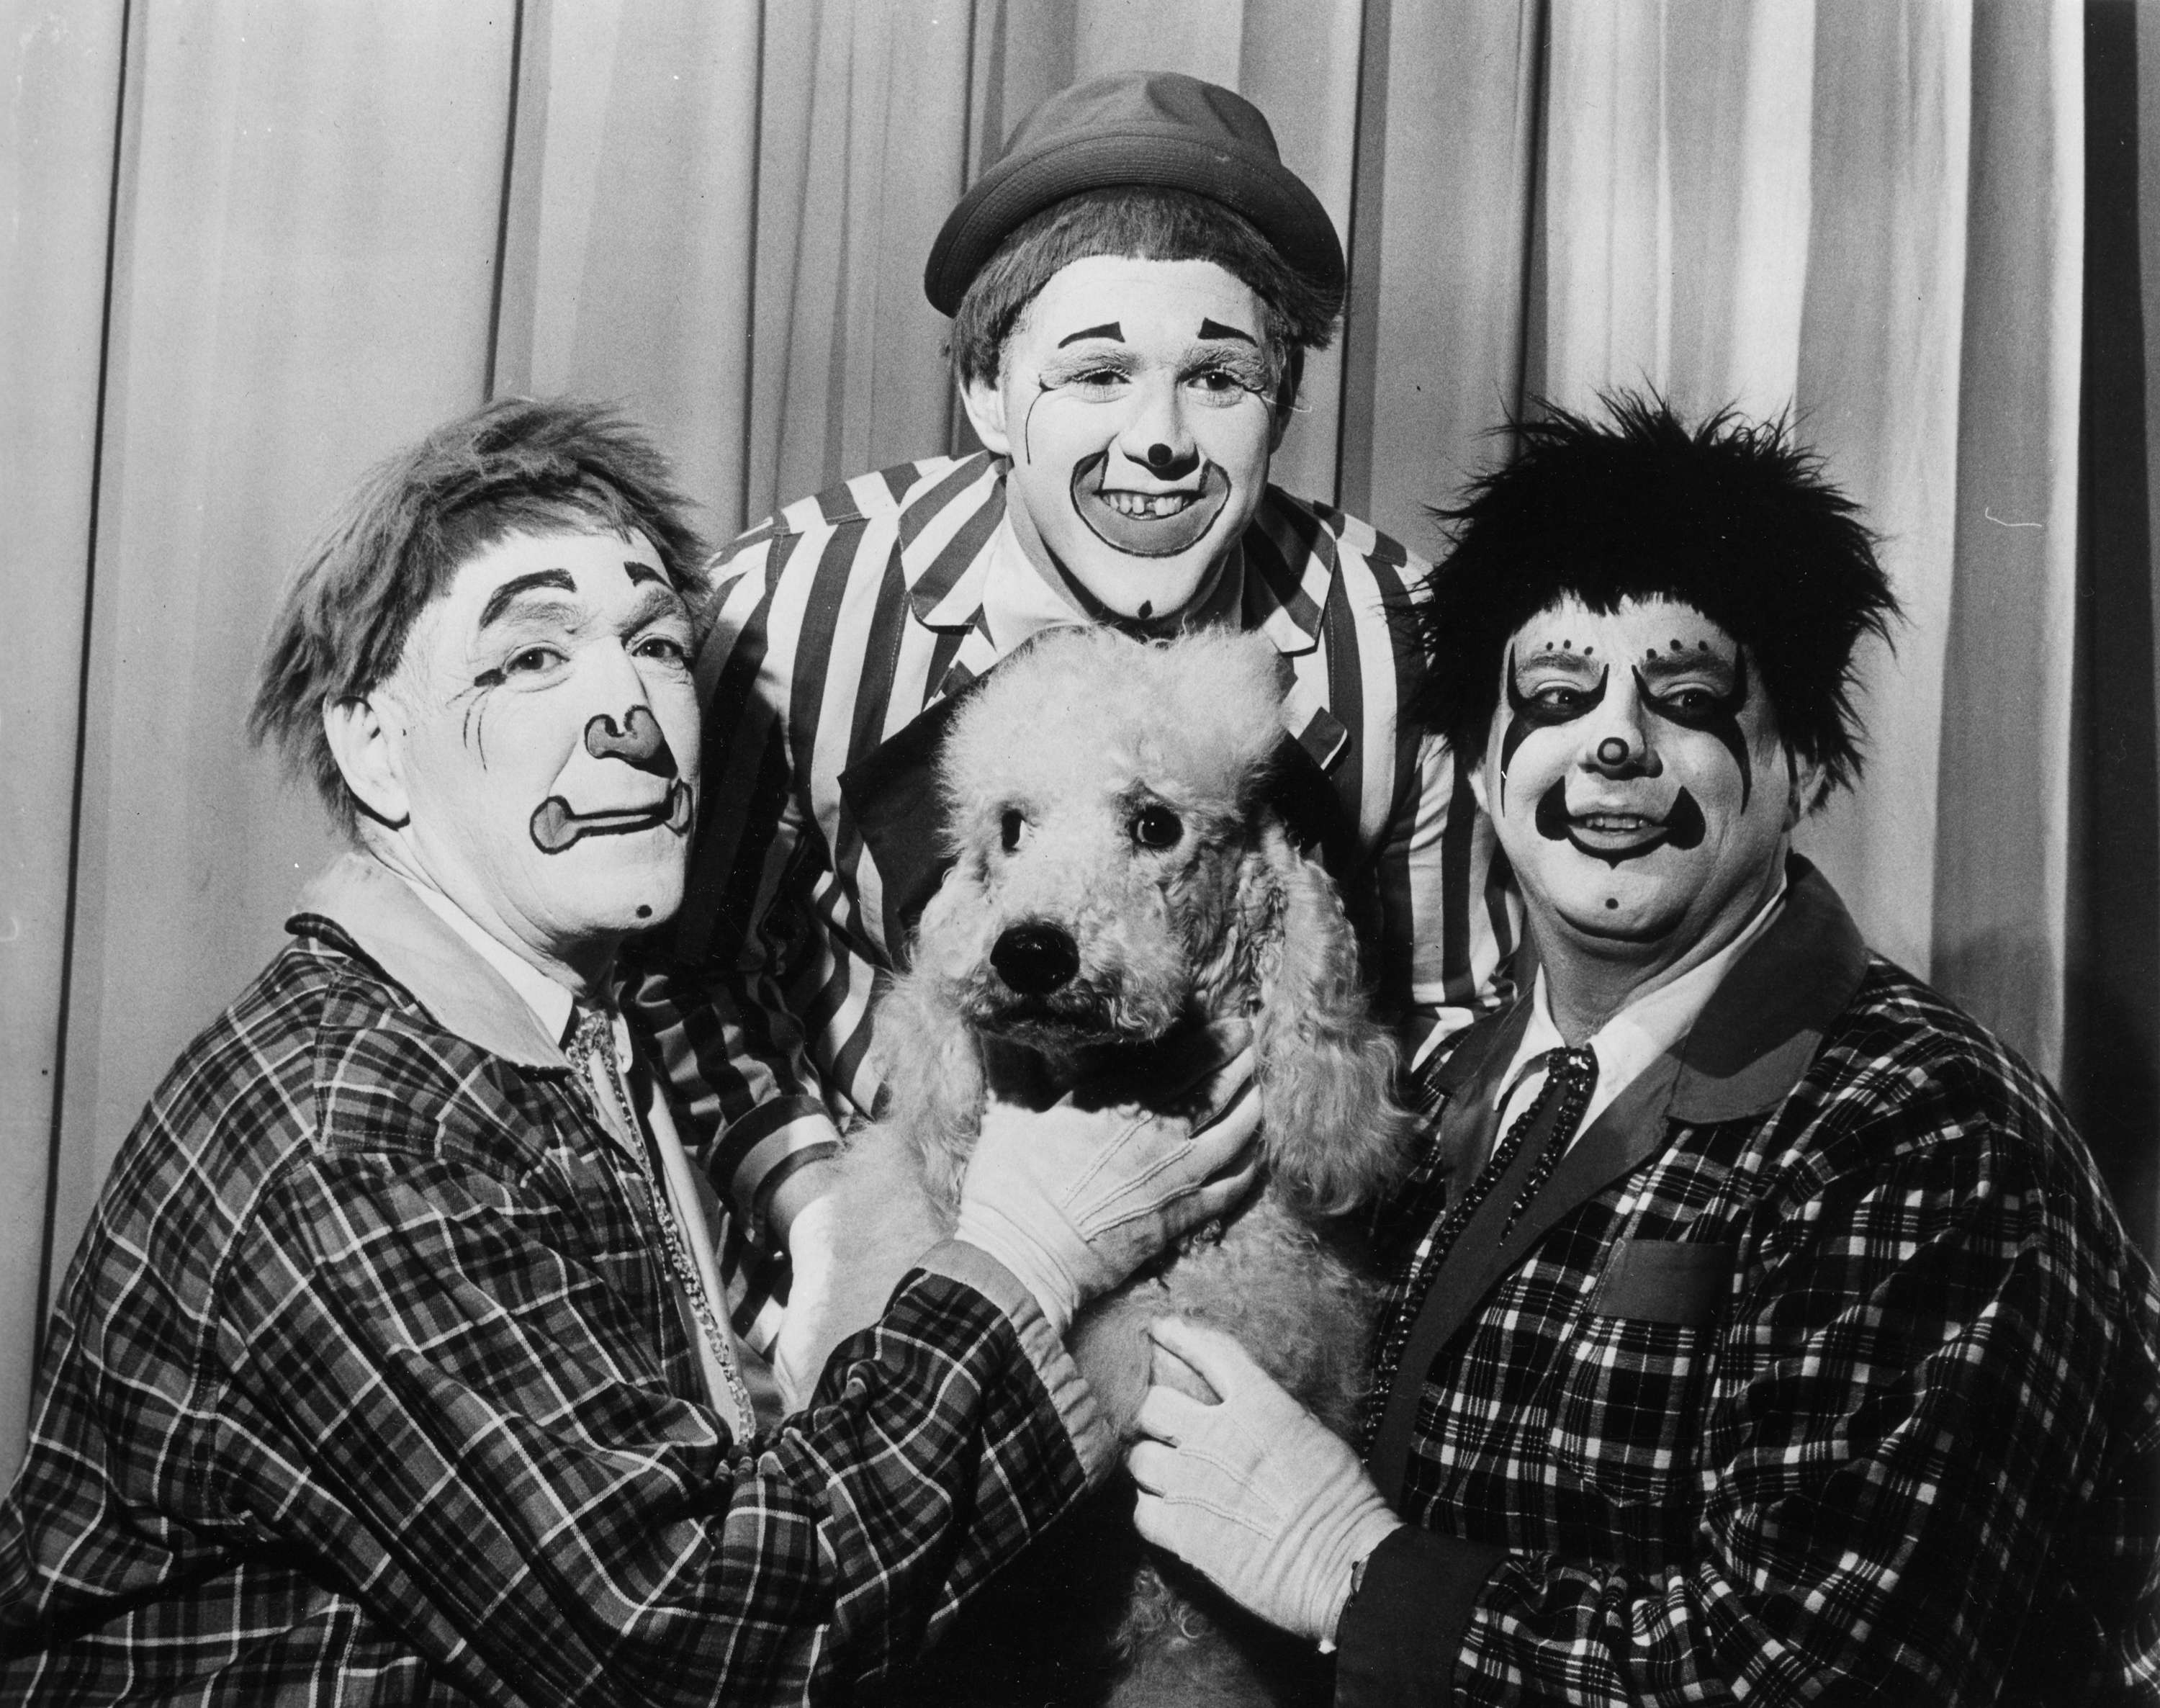 3 clowns and a dog